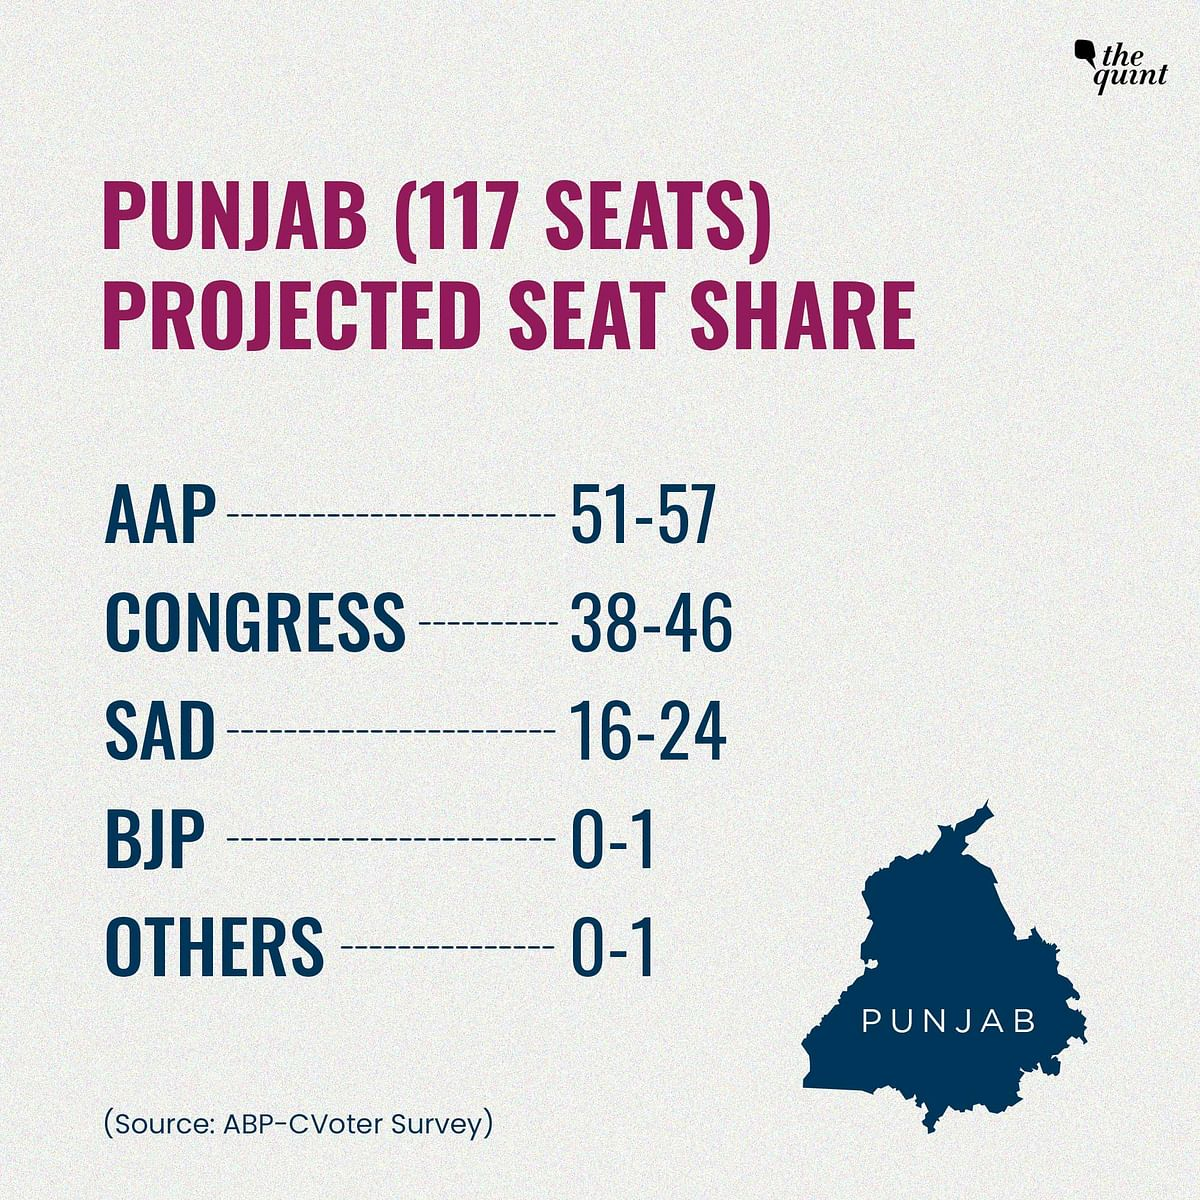 ABP-CVoter Poll: AAP May Get 55 Seats in Punjab but There's a Bigger Story Here